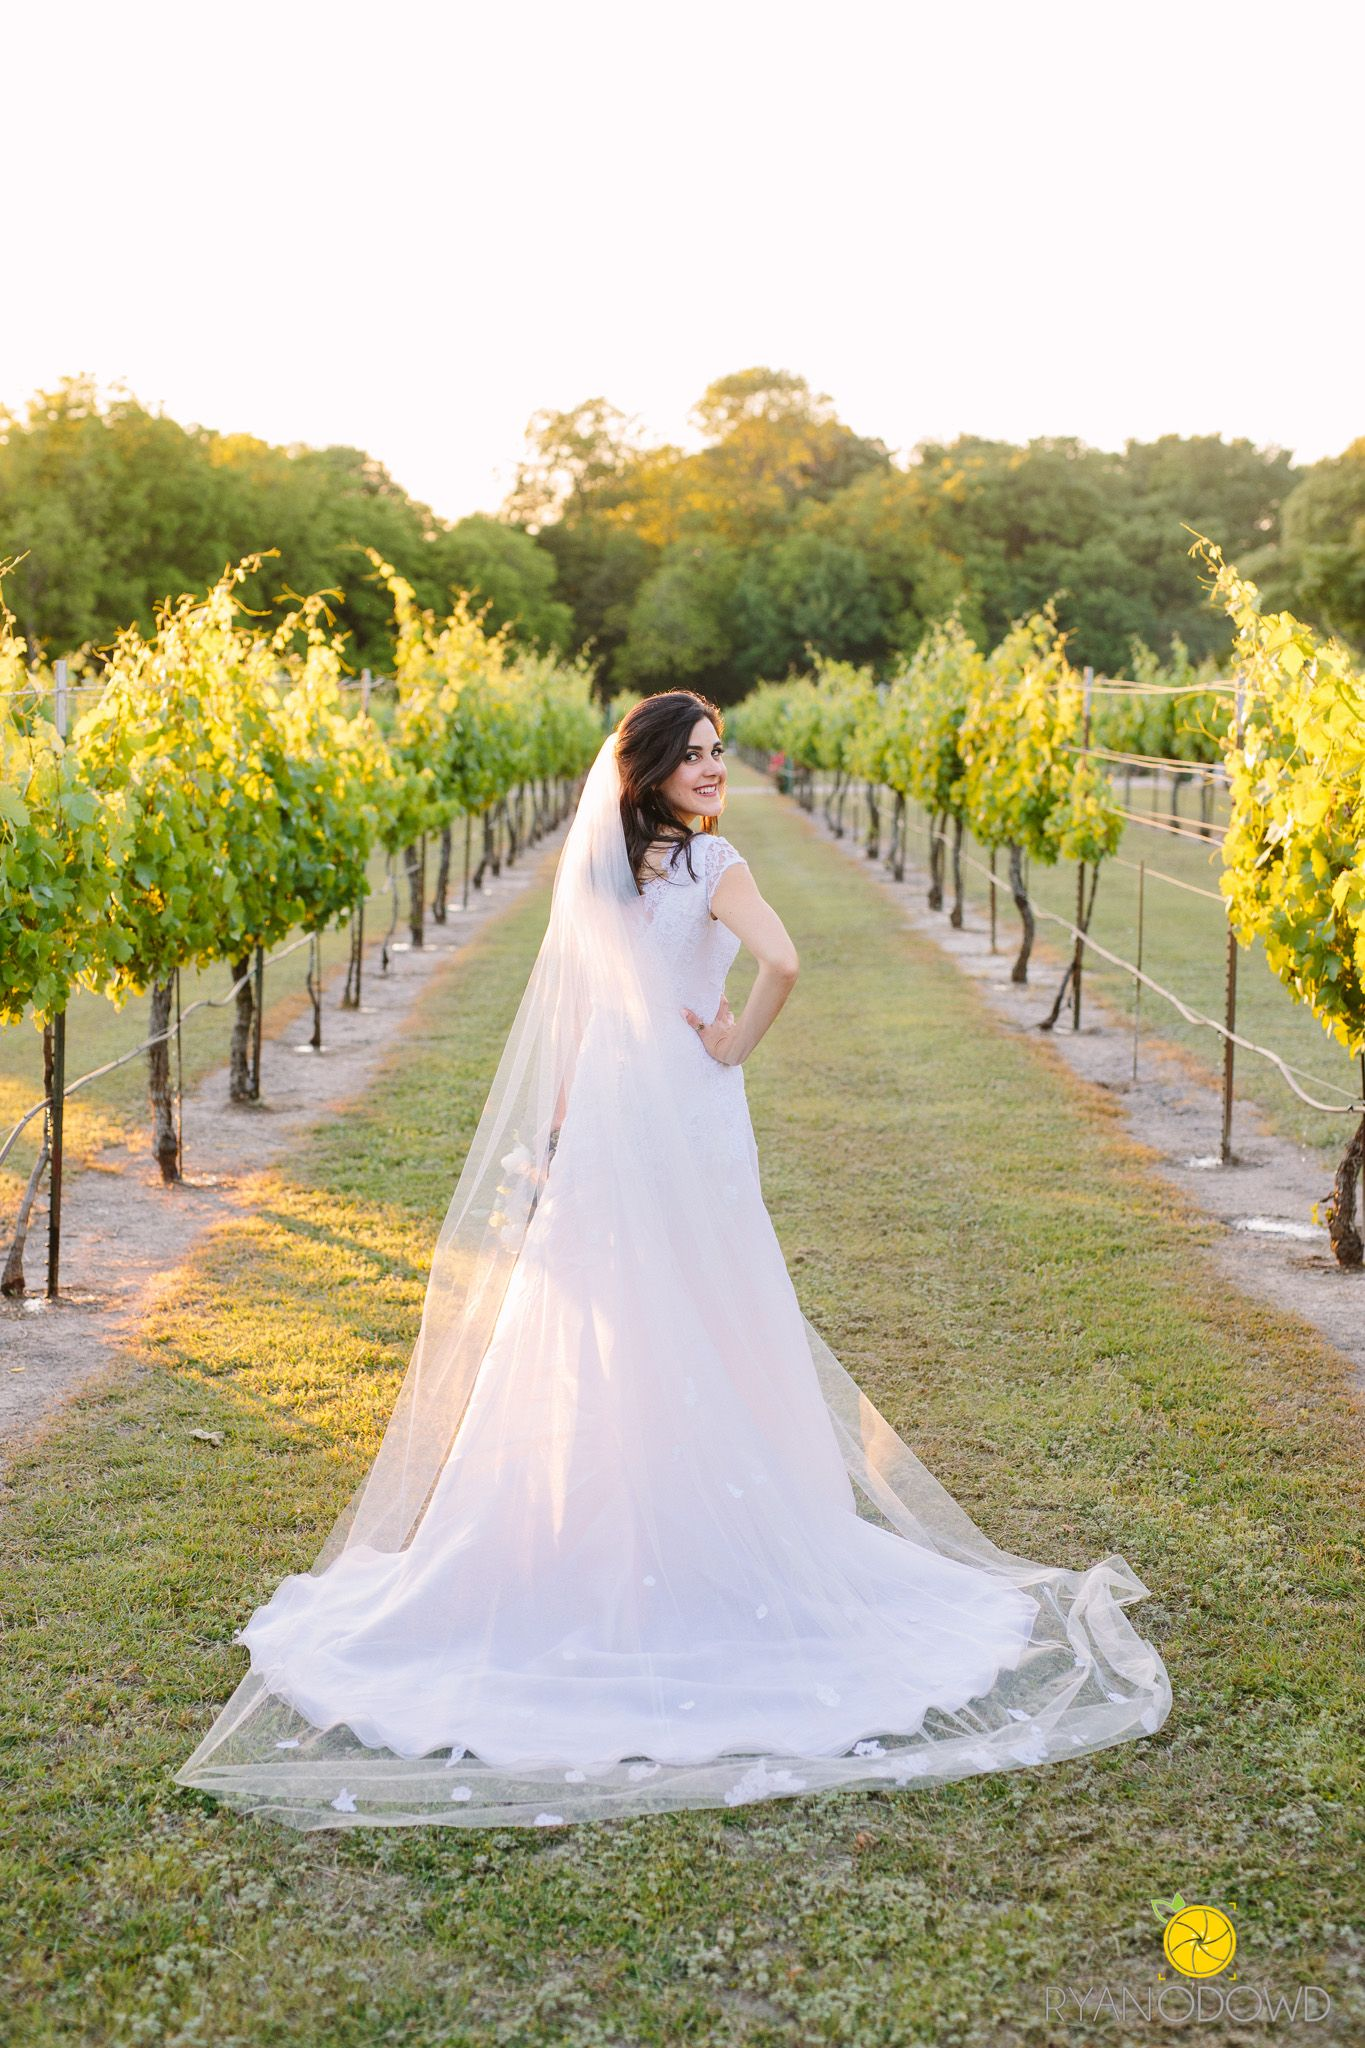 Best Dallas Wedding Photographer Midas Hill Vineyard Bride Elegant